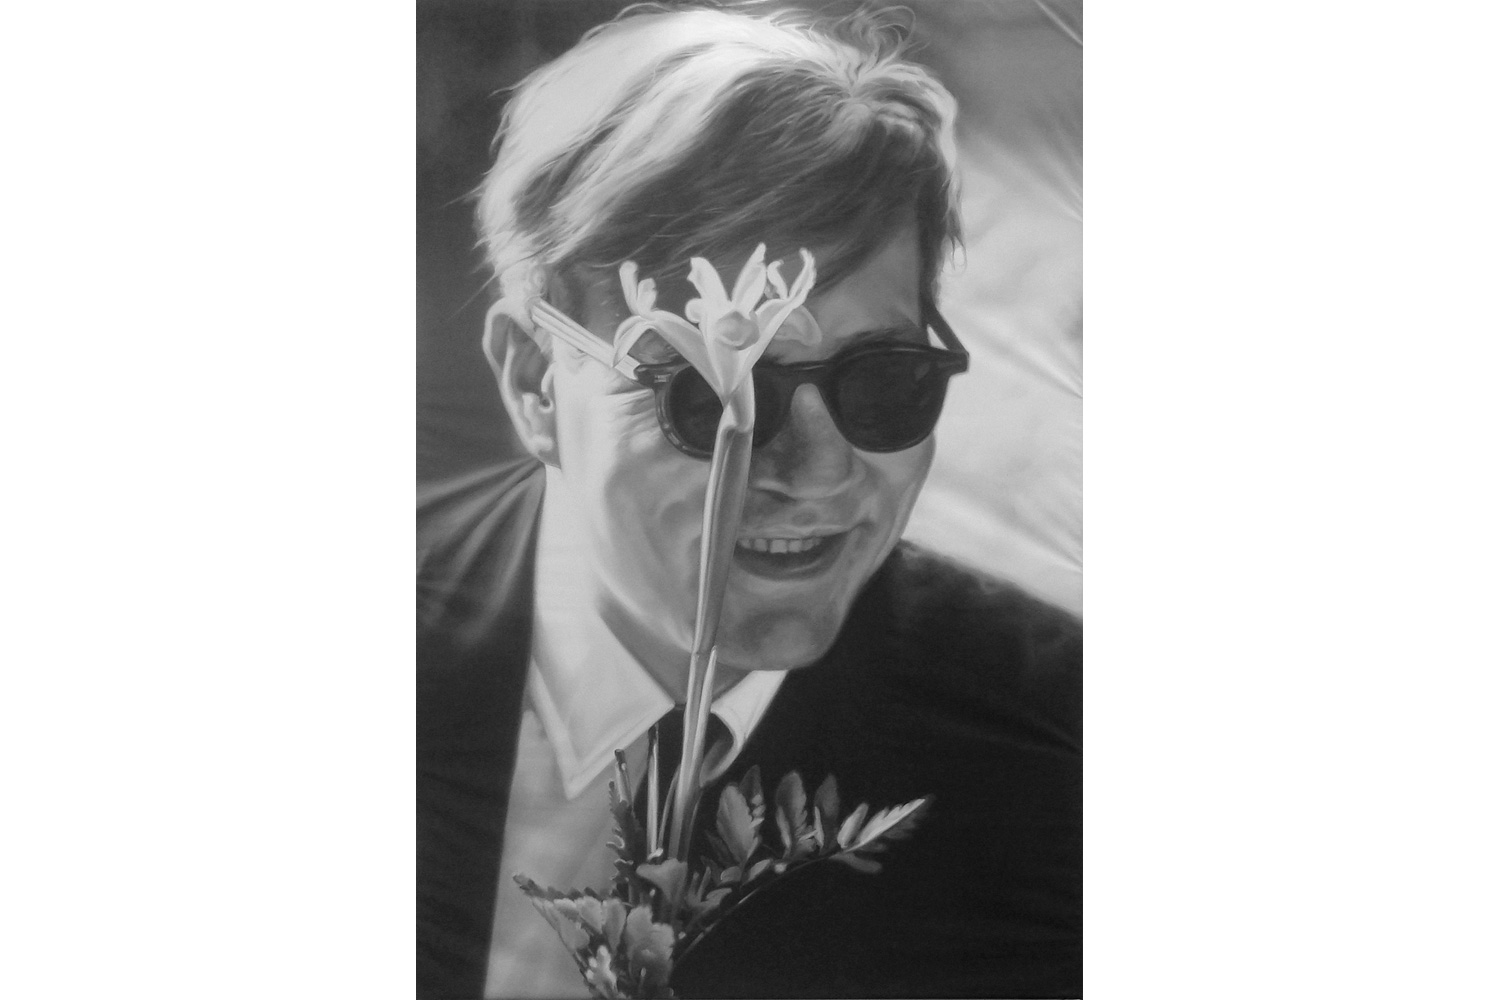 Andy Warhol (with flower smiling) 13ea6a31818a